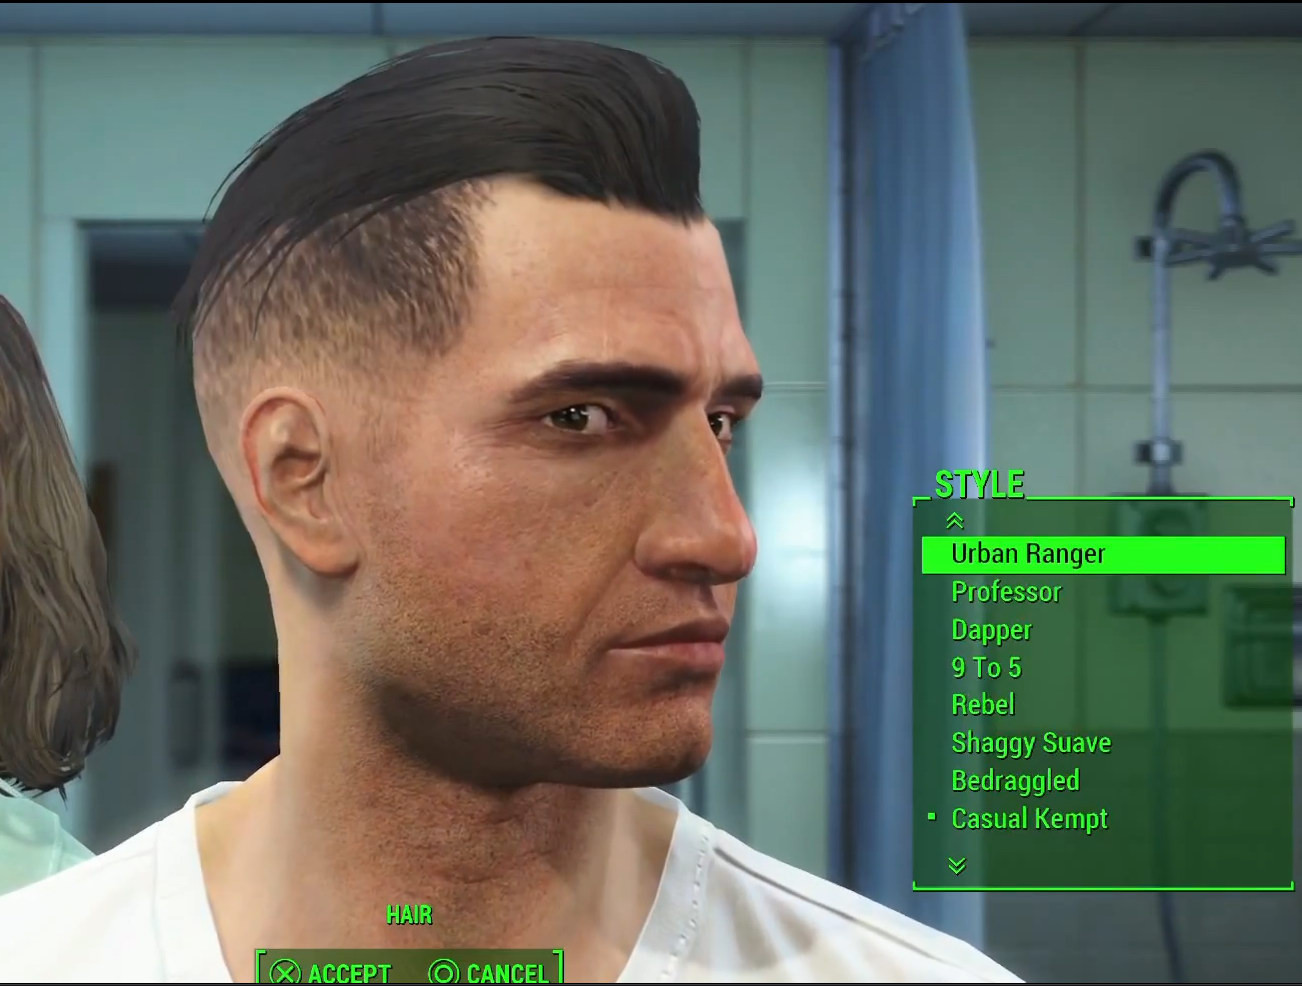 Best ideas about Fallout 4 Male Hairstyles . Save or Pin Hairstyles from fallout 4 for males New Vegas Mod Now.